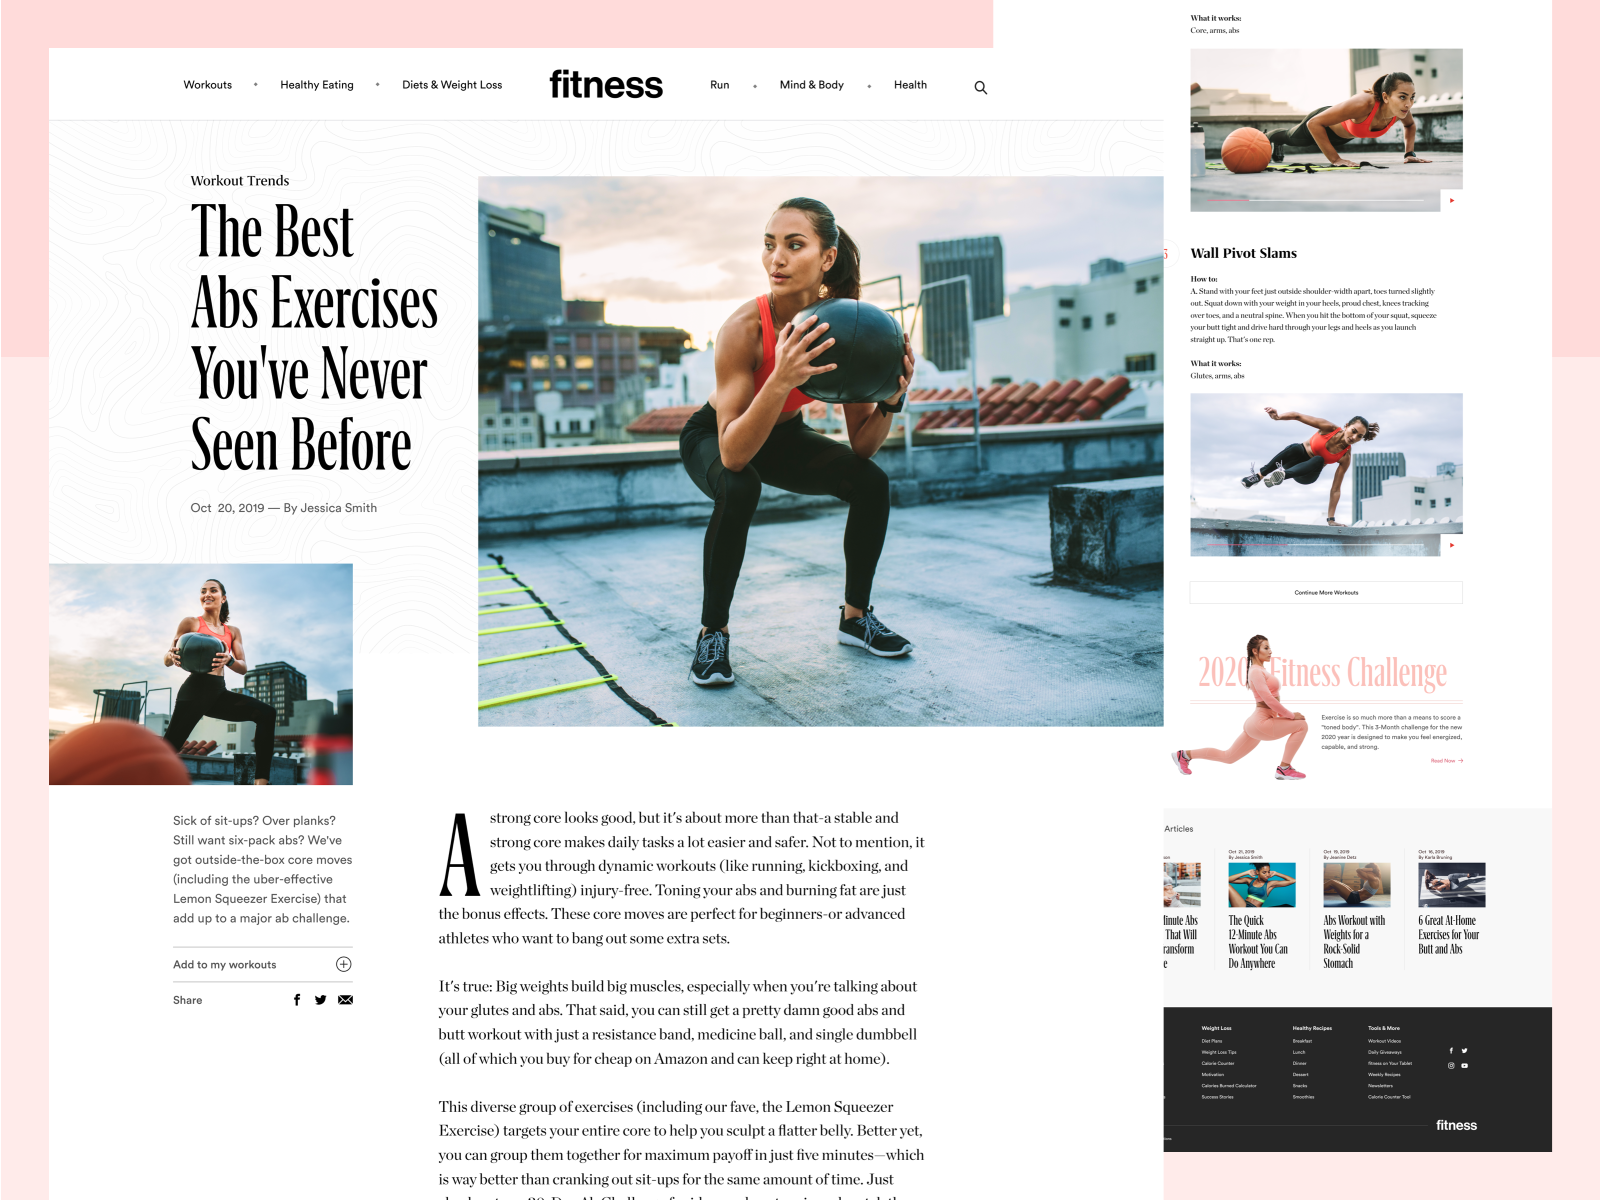 Fitnessmagazine.com Article Page by Jason Kirtley